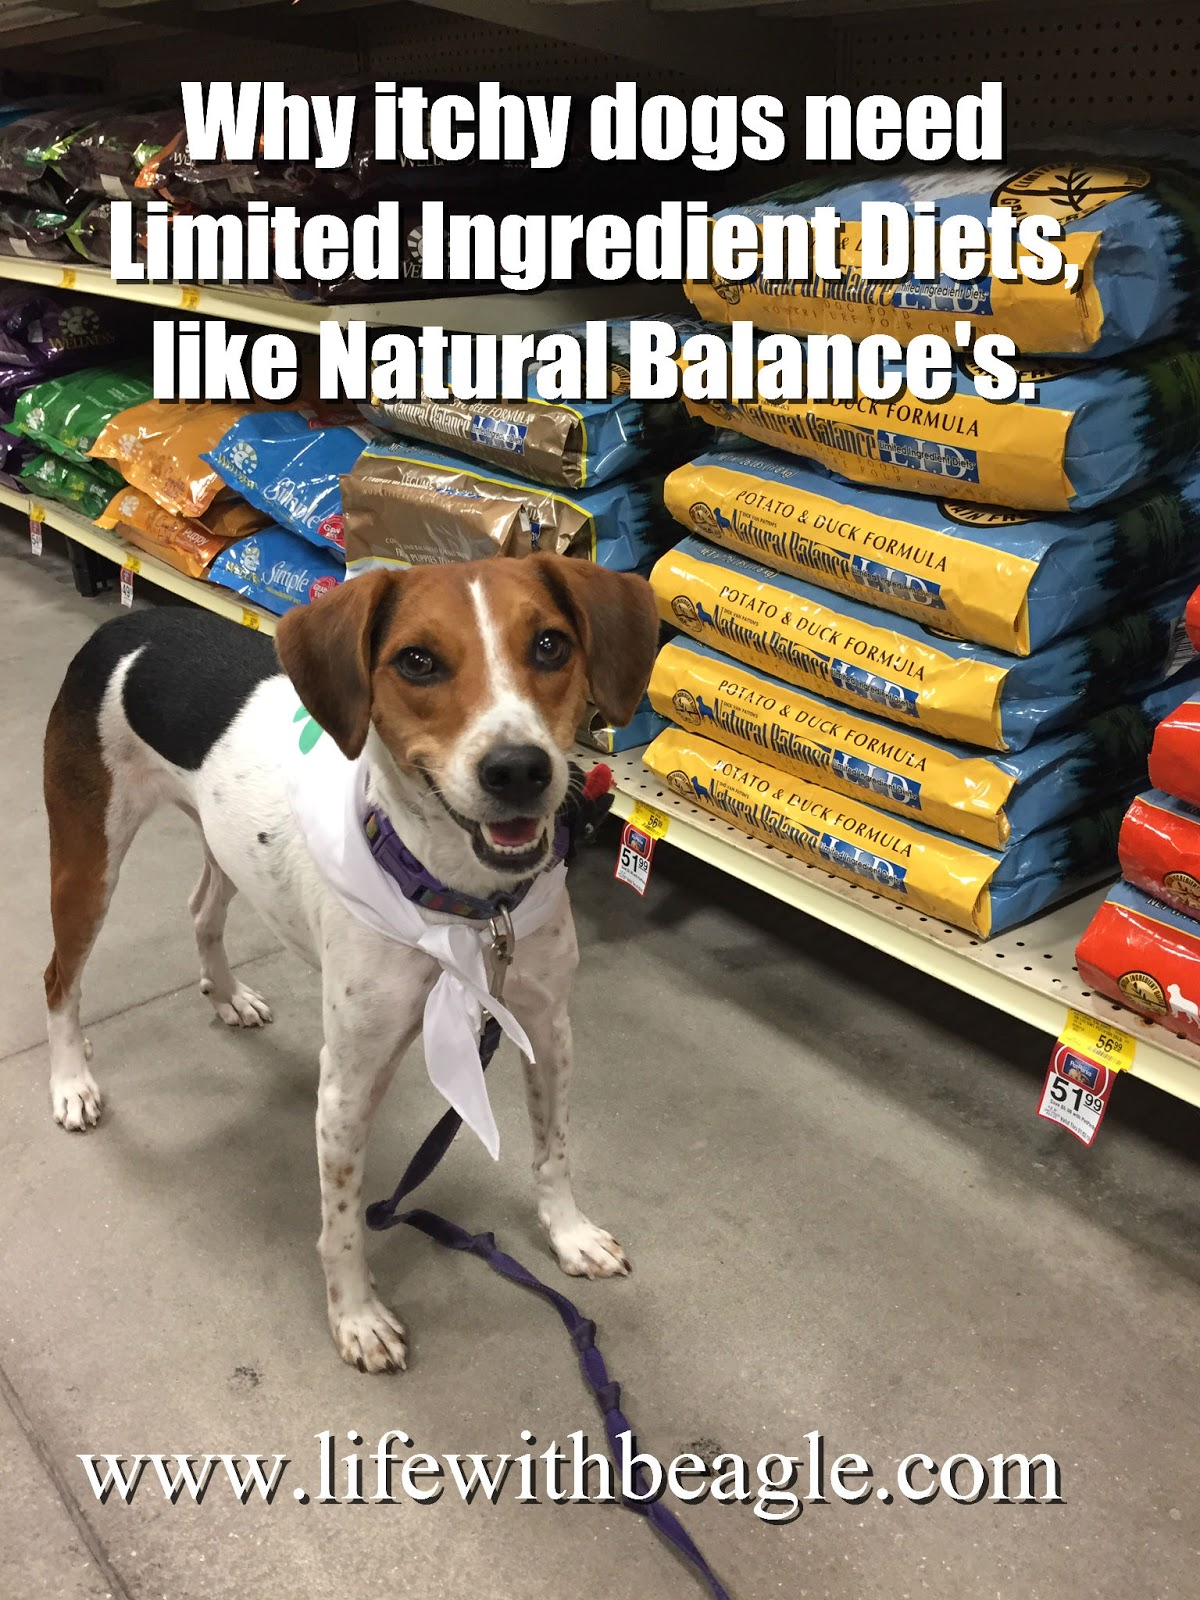 Life With Beagle: Limited ingredient diets for allergy-suffering ... | Natural Balance Dog Food Allergies